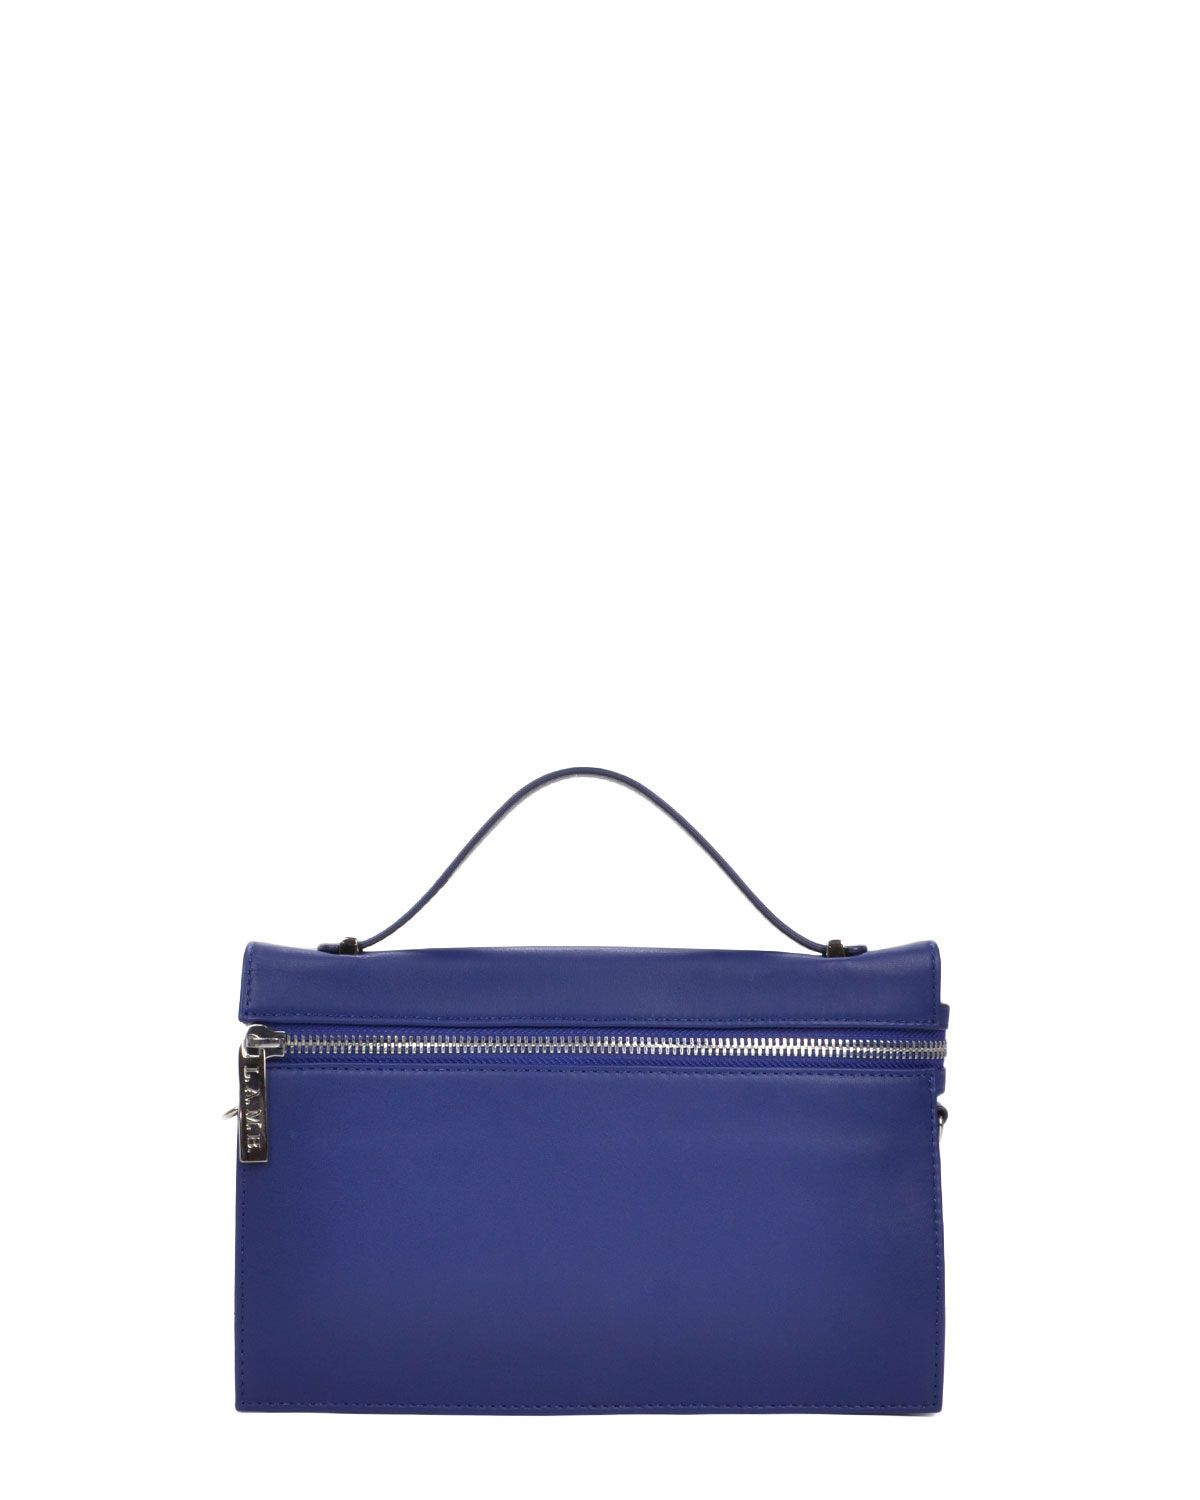 L.A.M.B. Dolley Leather Zip Handbag